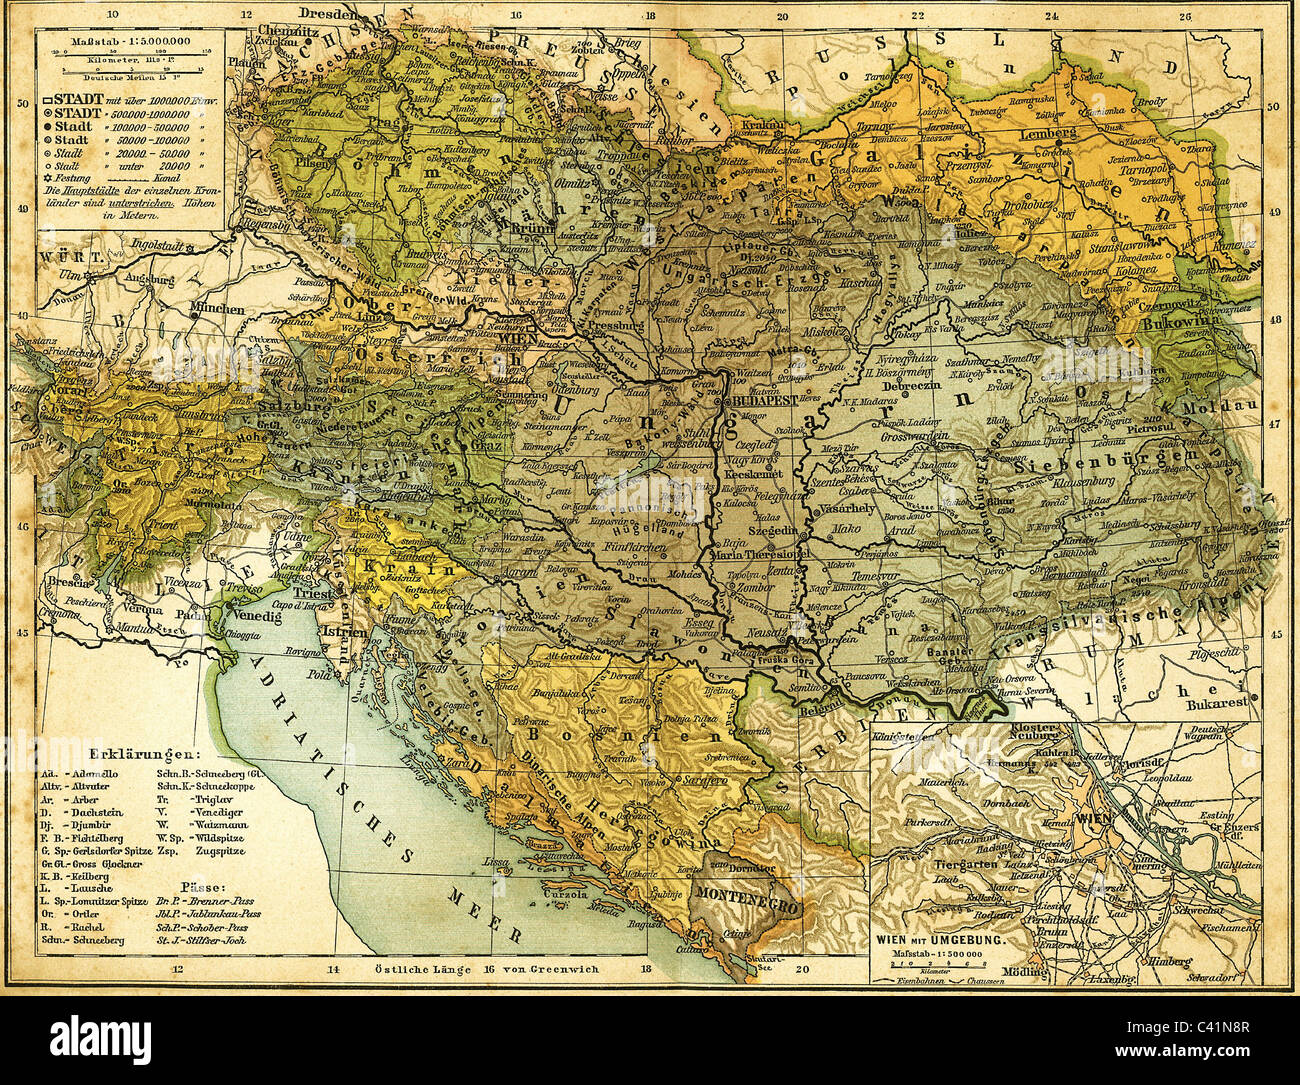 Austria Hungary Map High Resolution Stock Photography And Images Alamy